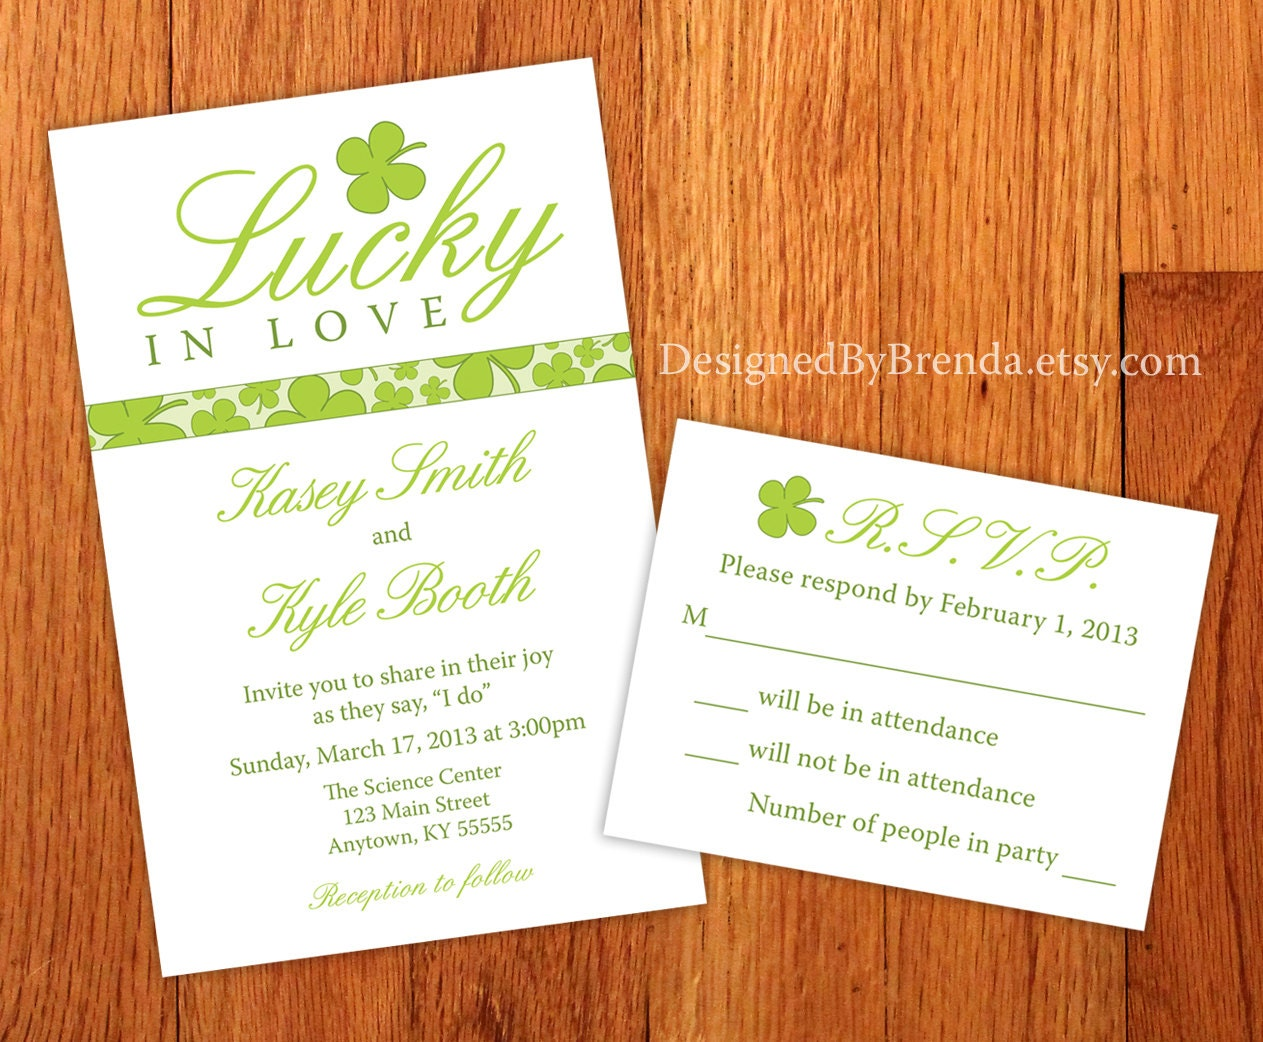 How Big Are Wedding Invitations: Large Shamrock Lucky In Love Wedding Invitations Green